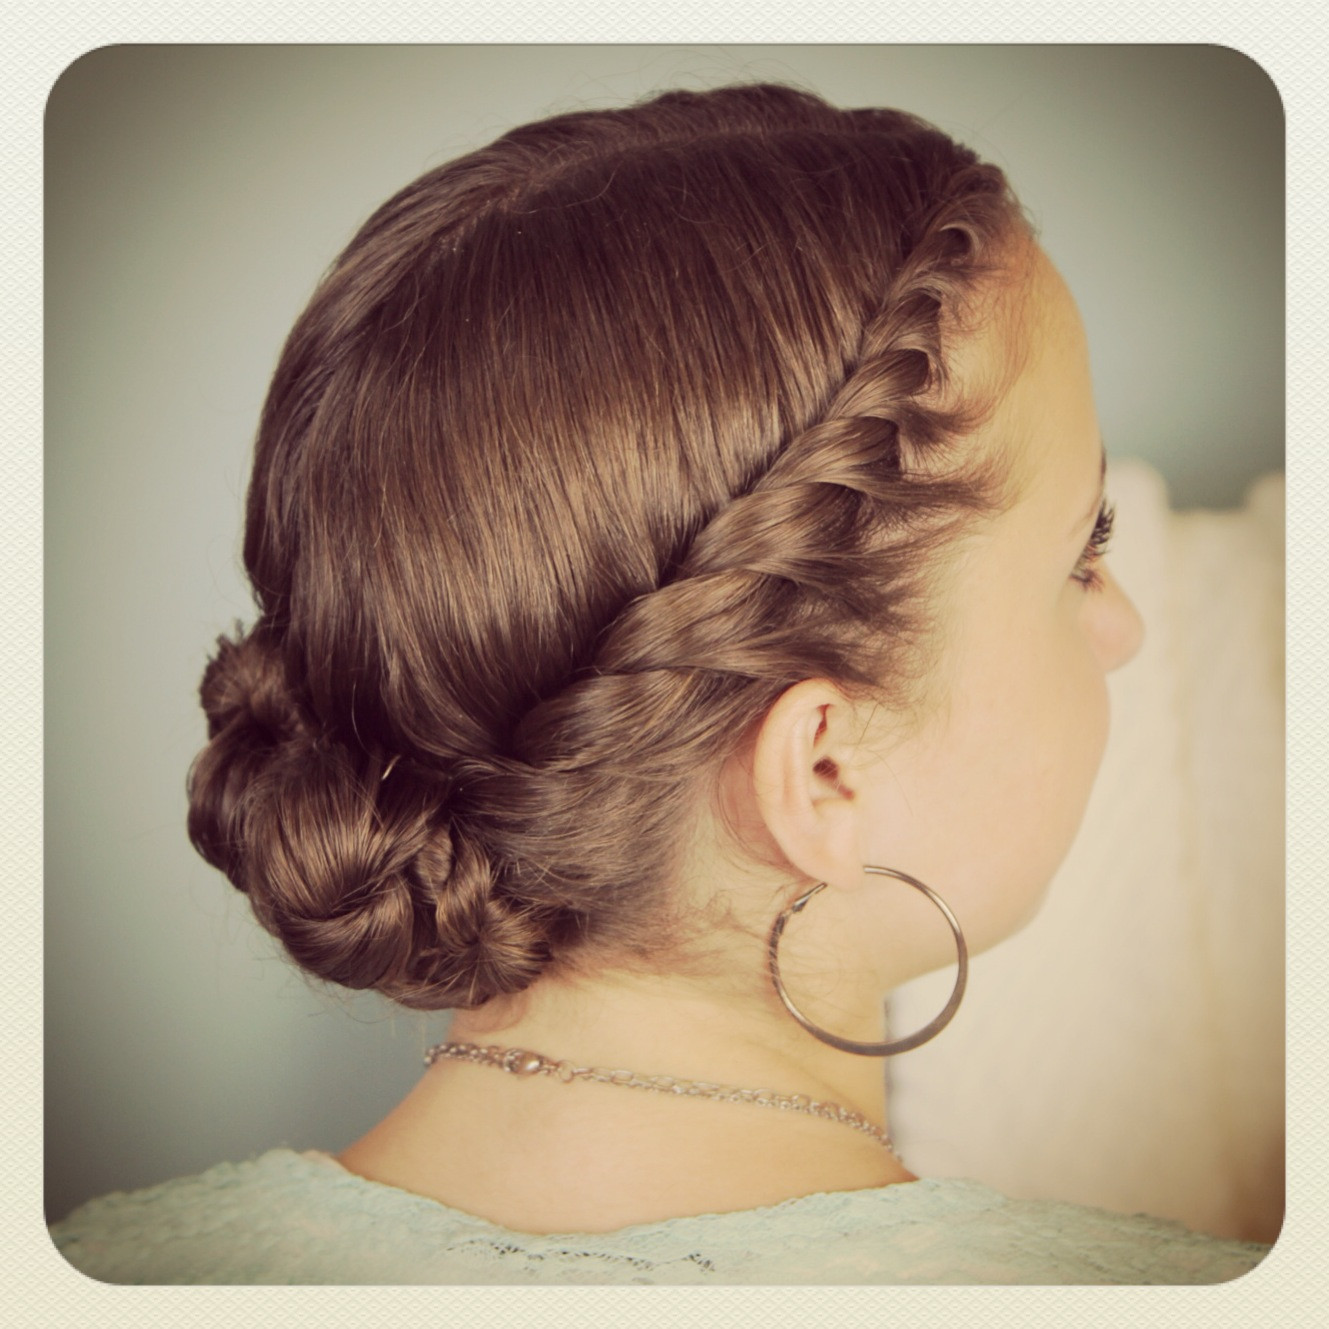 Best ideas about Bun Hairstyles For Girls . Save or Pin Double Twist Bun Updo Home ing Hairstyles Now.